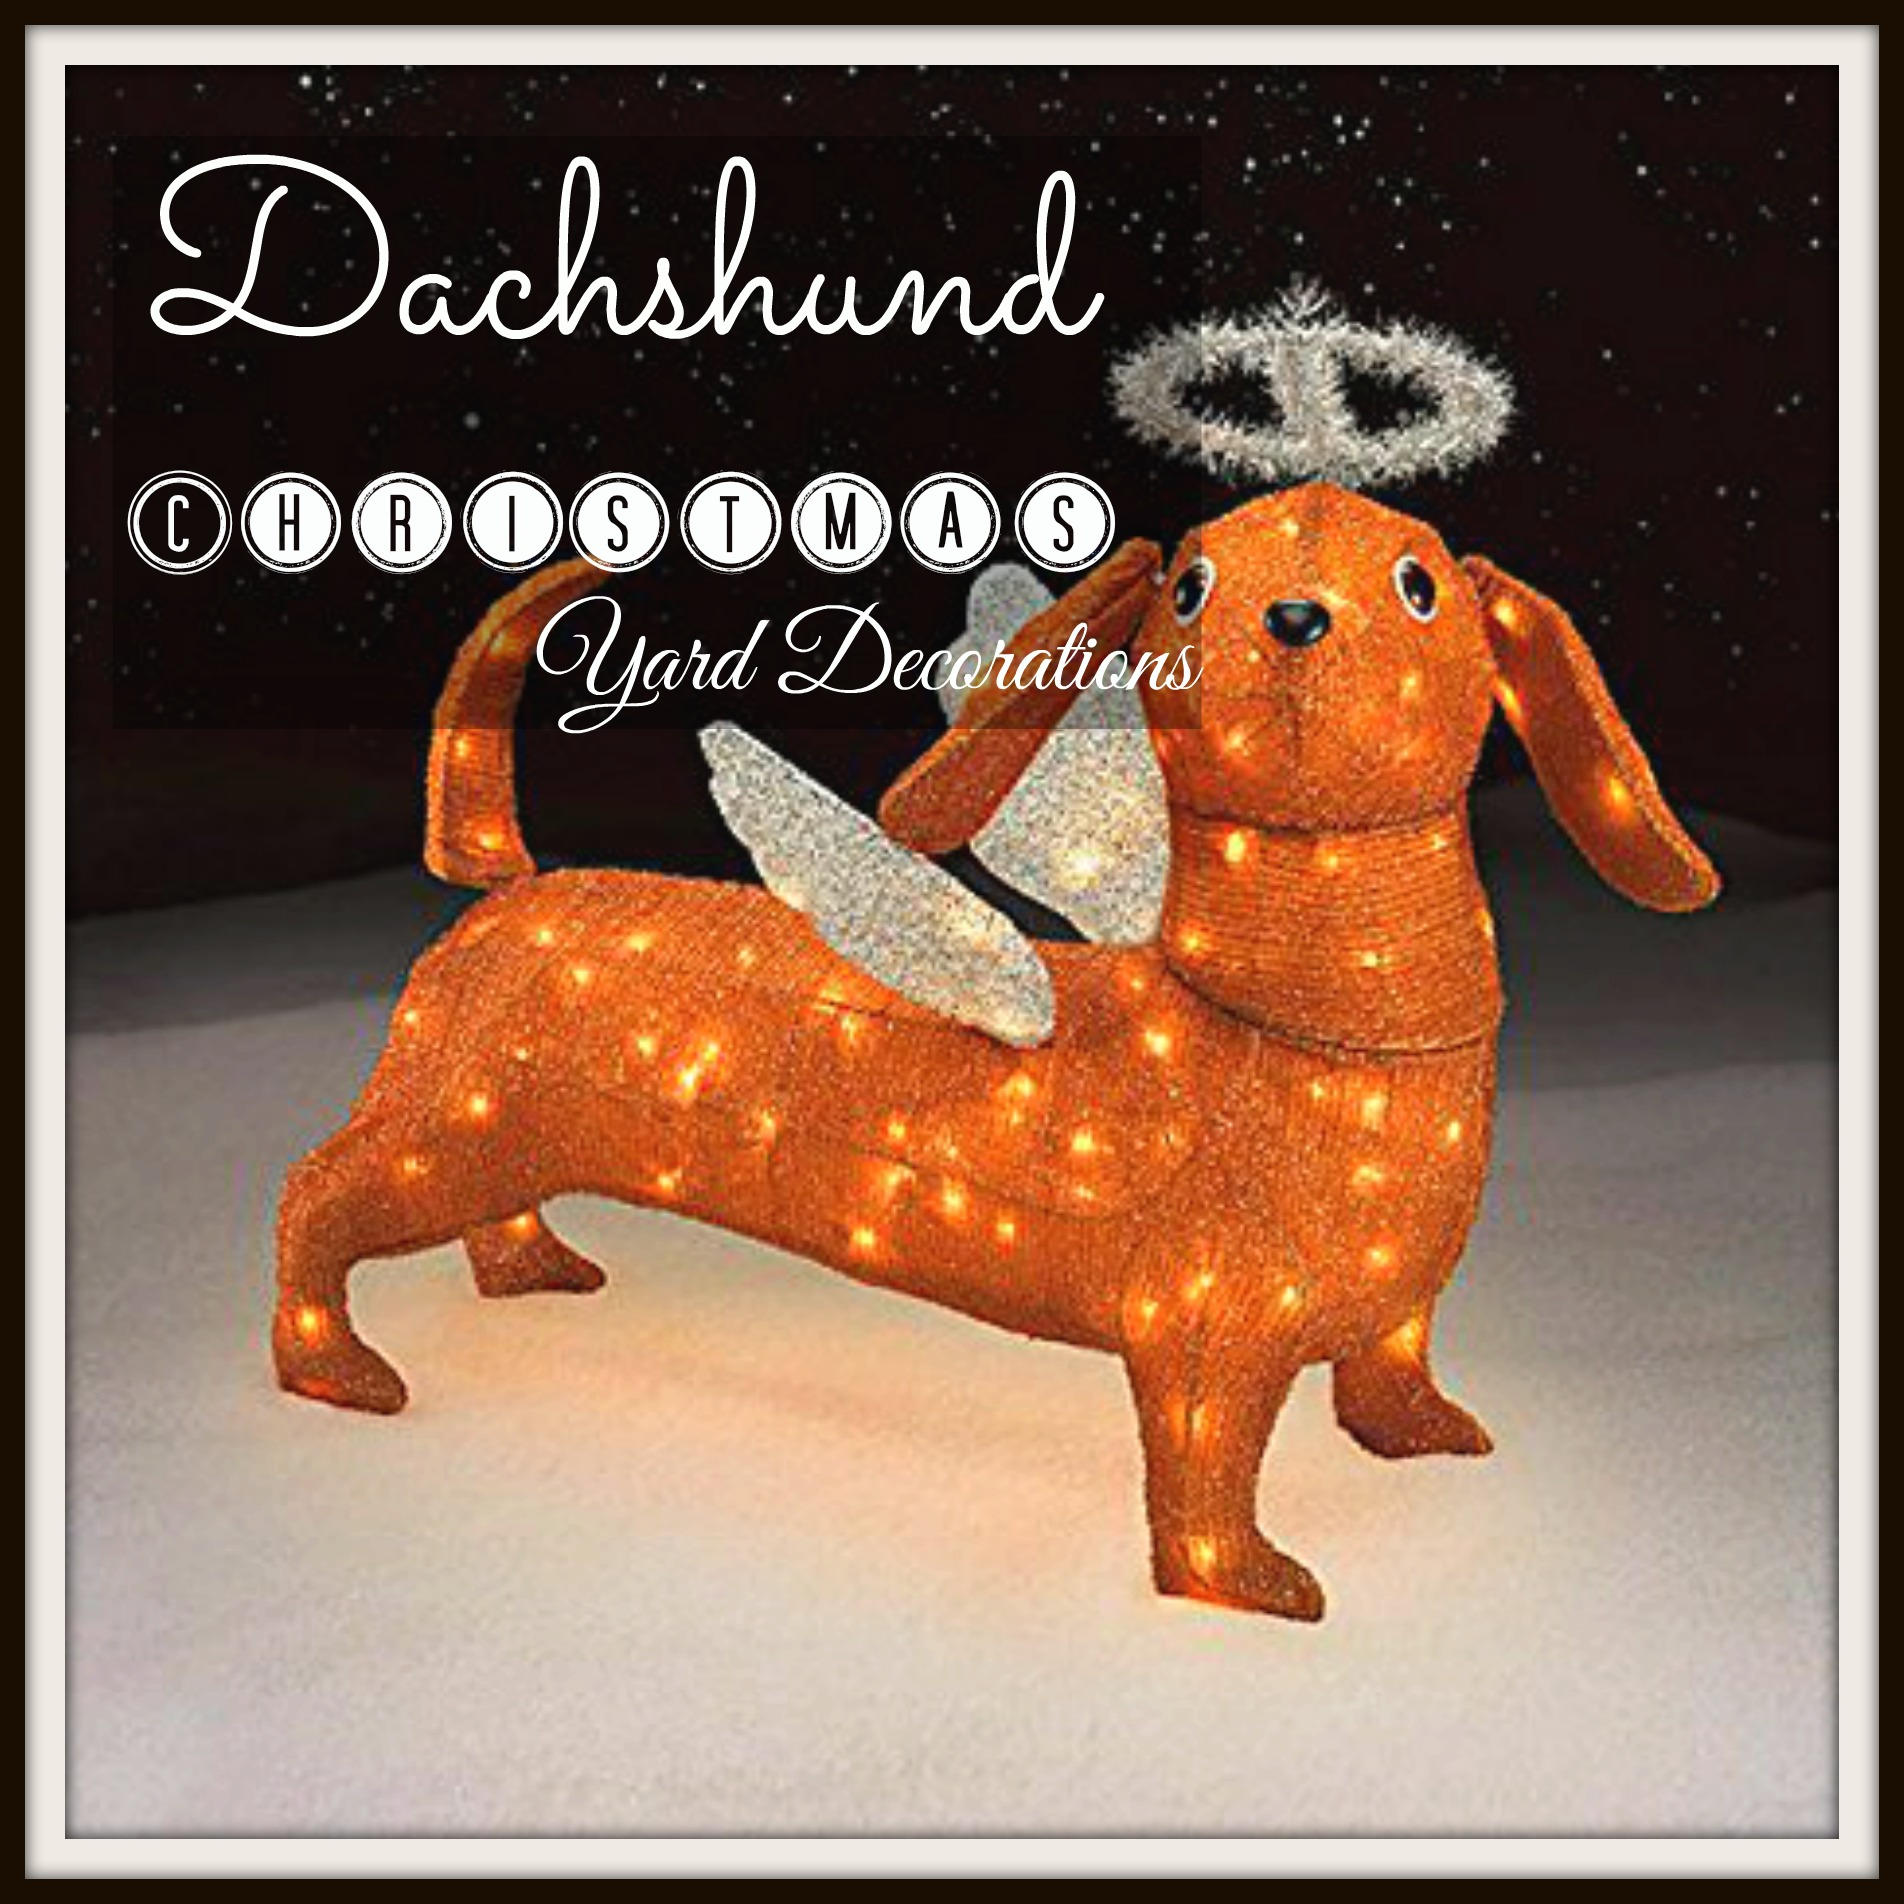 Wiener up your yard with a Dachshund Christmas Yard Decoration